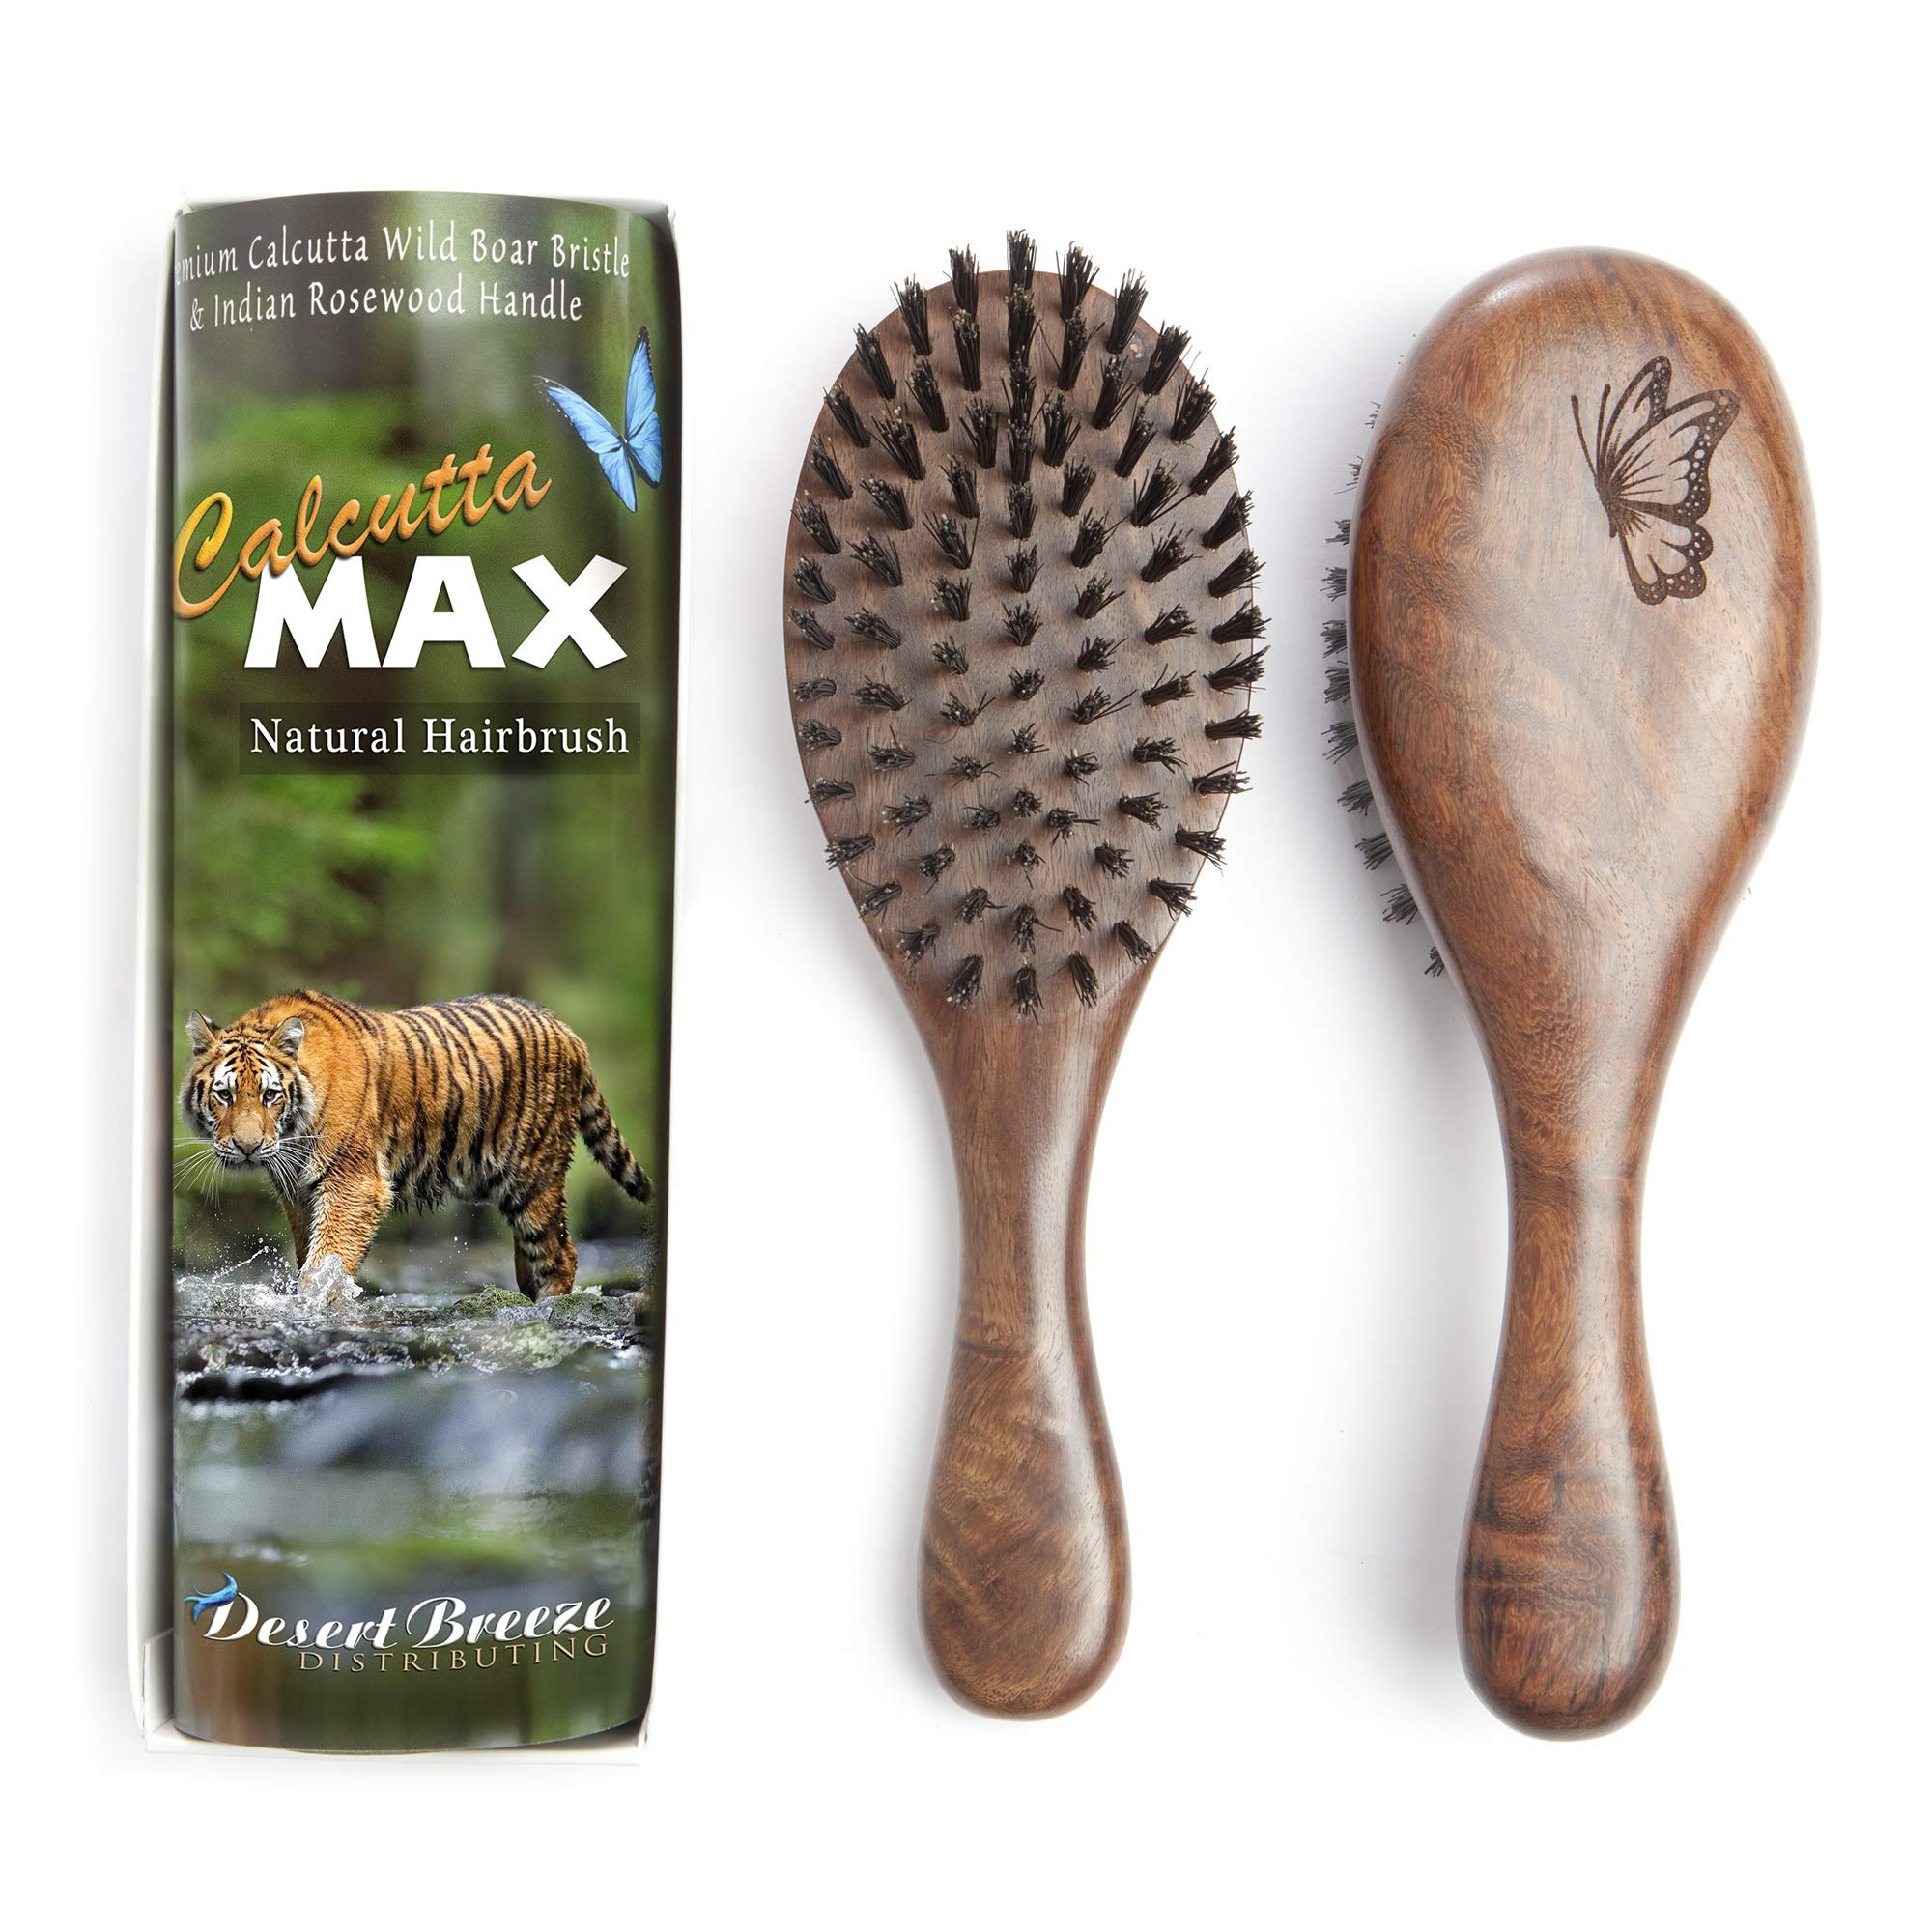 100% Pure Wild Boar Bristle Hair Brush, Calcutta Max for Thick or Long Hair, Gentle, Extra Stiff Natural Bristles, Hand Finished Indian Rosewood Handle, Tufted in USA, by Desert Breeze Distributing by Desert Breeze Distributing (Image #1)